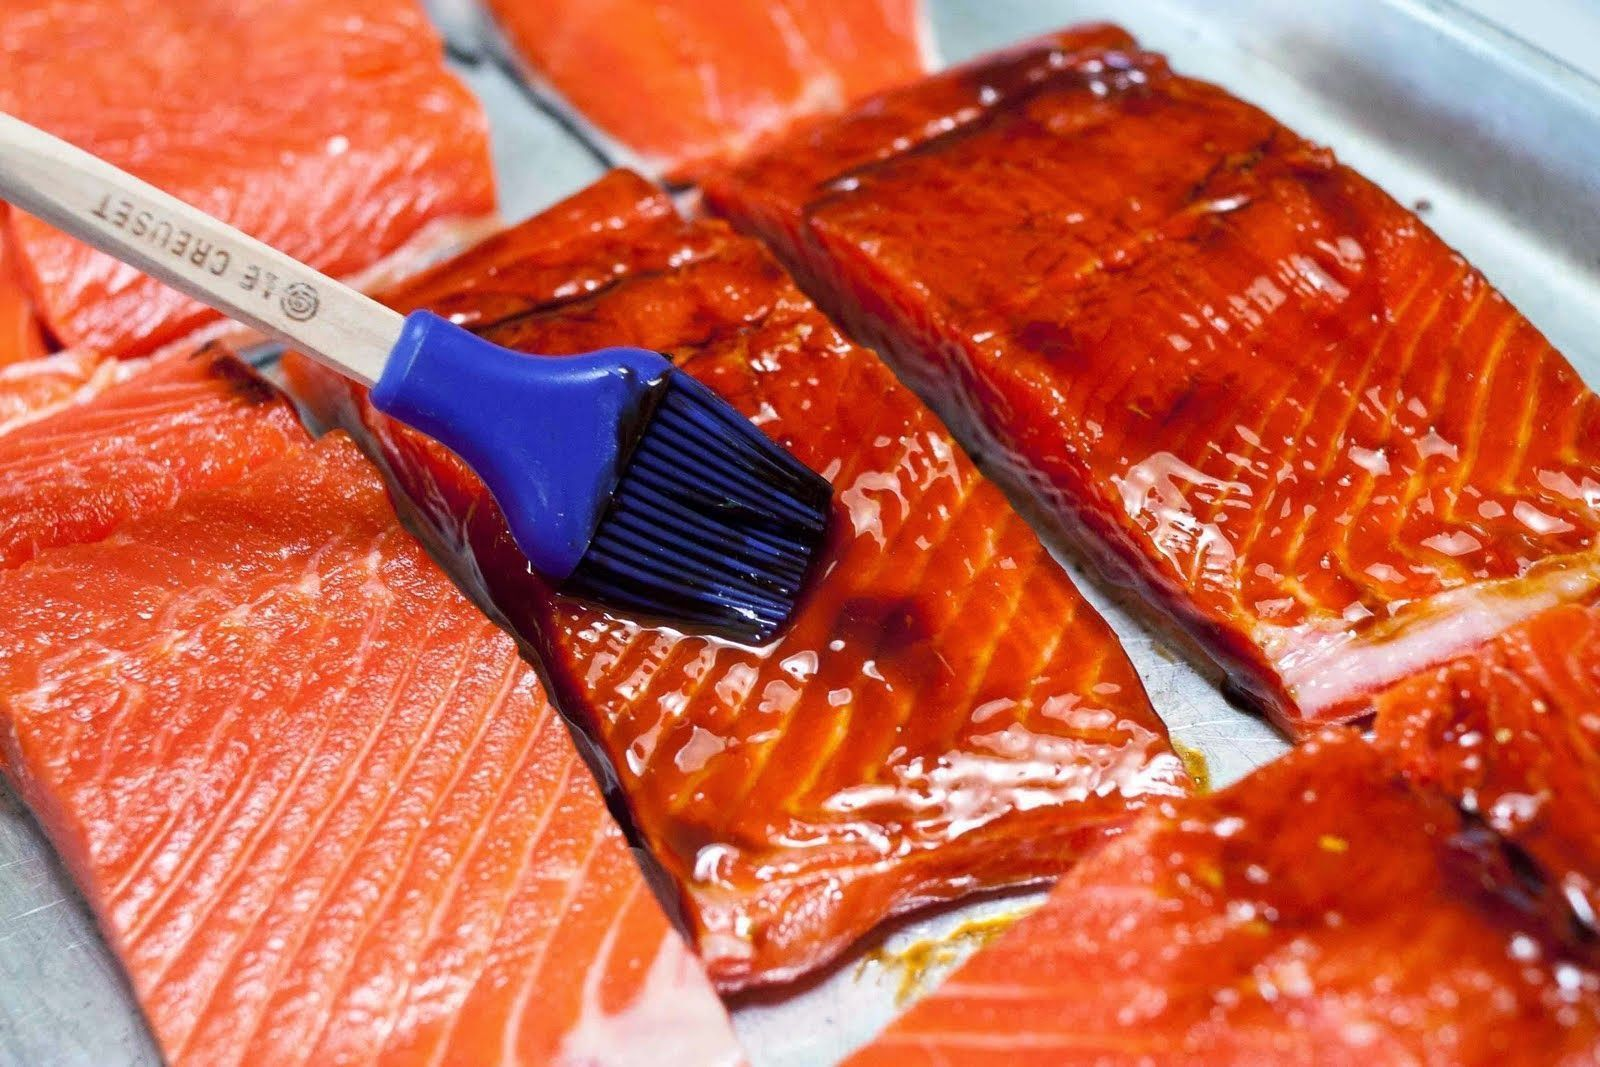 How To Cook Salmon: Teriyaki Grilled Salmon #salmonteriyaki How To Cook Salmon: Teriyaki Grilled Salmon #salmonteriyaki How To Cook Salmon: Teriyaki Grilled Salmon #salmonteriyaki How To Cook Salmon: Teriyaki Grilled Salmon #salmonteriyaki How To Cook Salmon: Teriyaki Grilled Salmon #salmonteriyaki How To Cook Salmon: Teriyaki Grilled Salmon #salmonteriyaki How To Cook Salmon: Teriyaki Grilled Salmon #salmonteriyaki How To Cook Salmon: Teriyaki Grilled Salmon #salmonteriyaki How To Cook Salmon: #salmonteriyaki